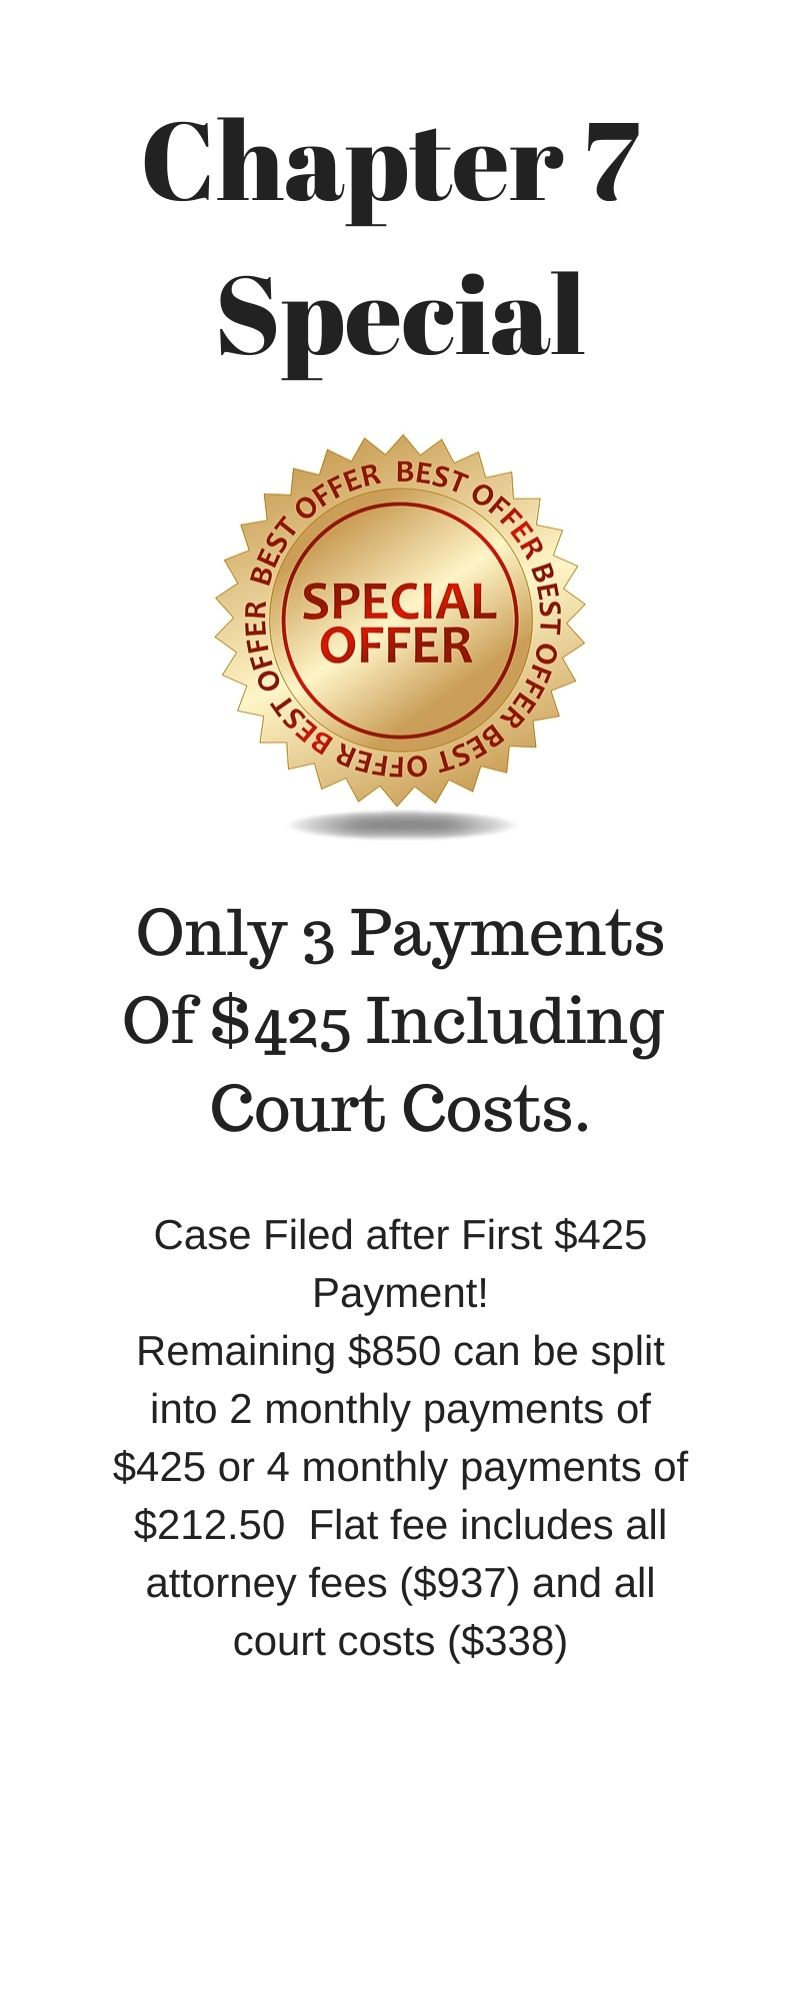 Alsip Bankruptcy Lawyer. Chapter 7 Special - Only 3 Payments of $425 including court costs and credit report.